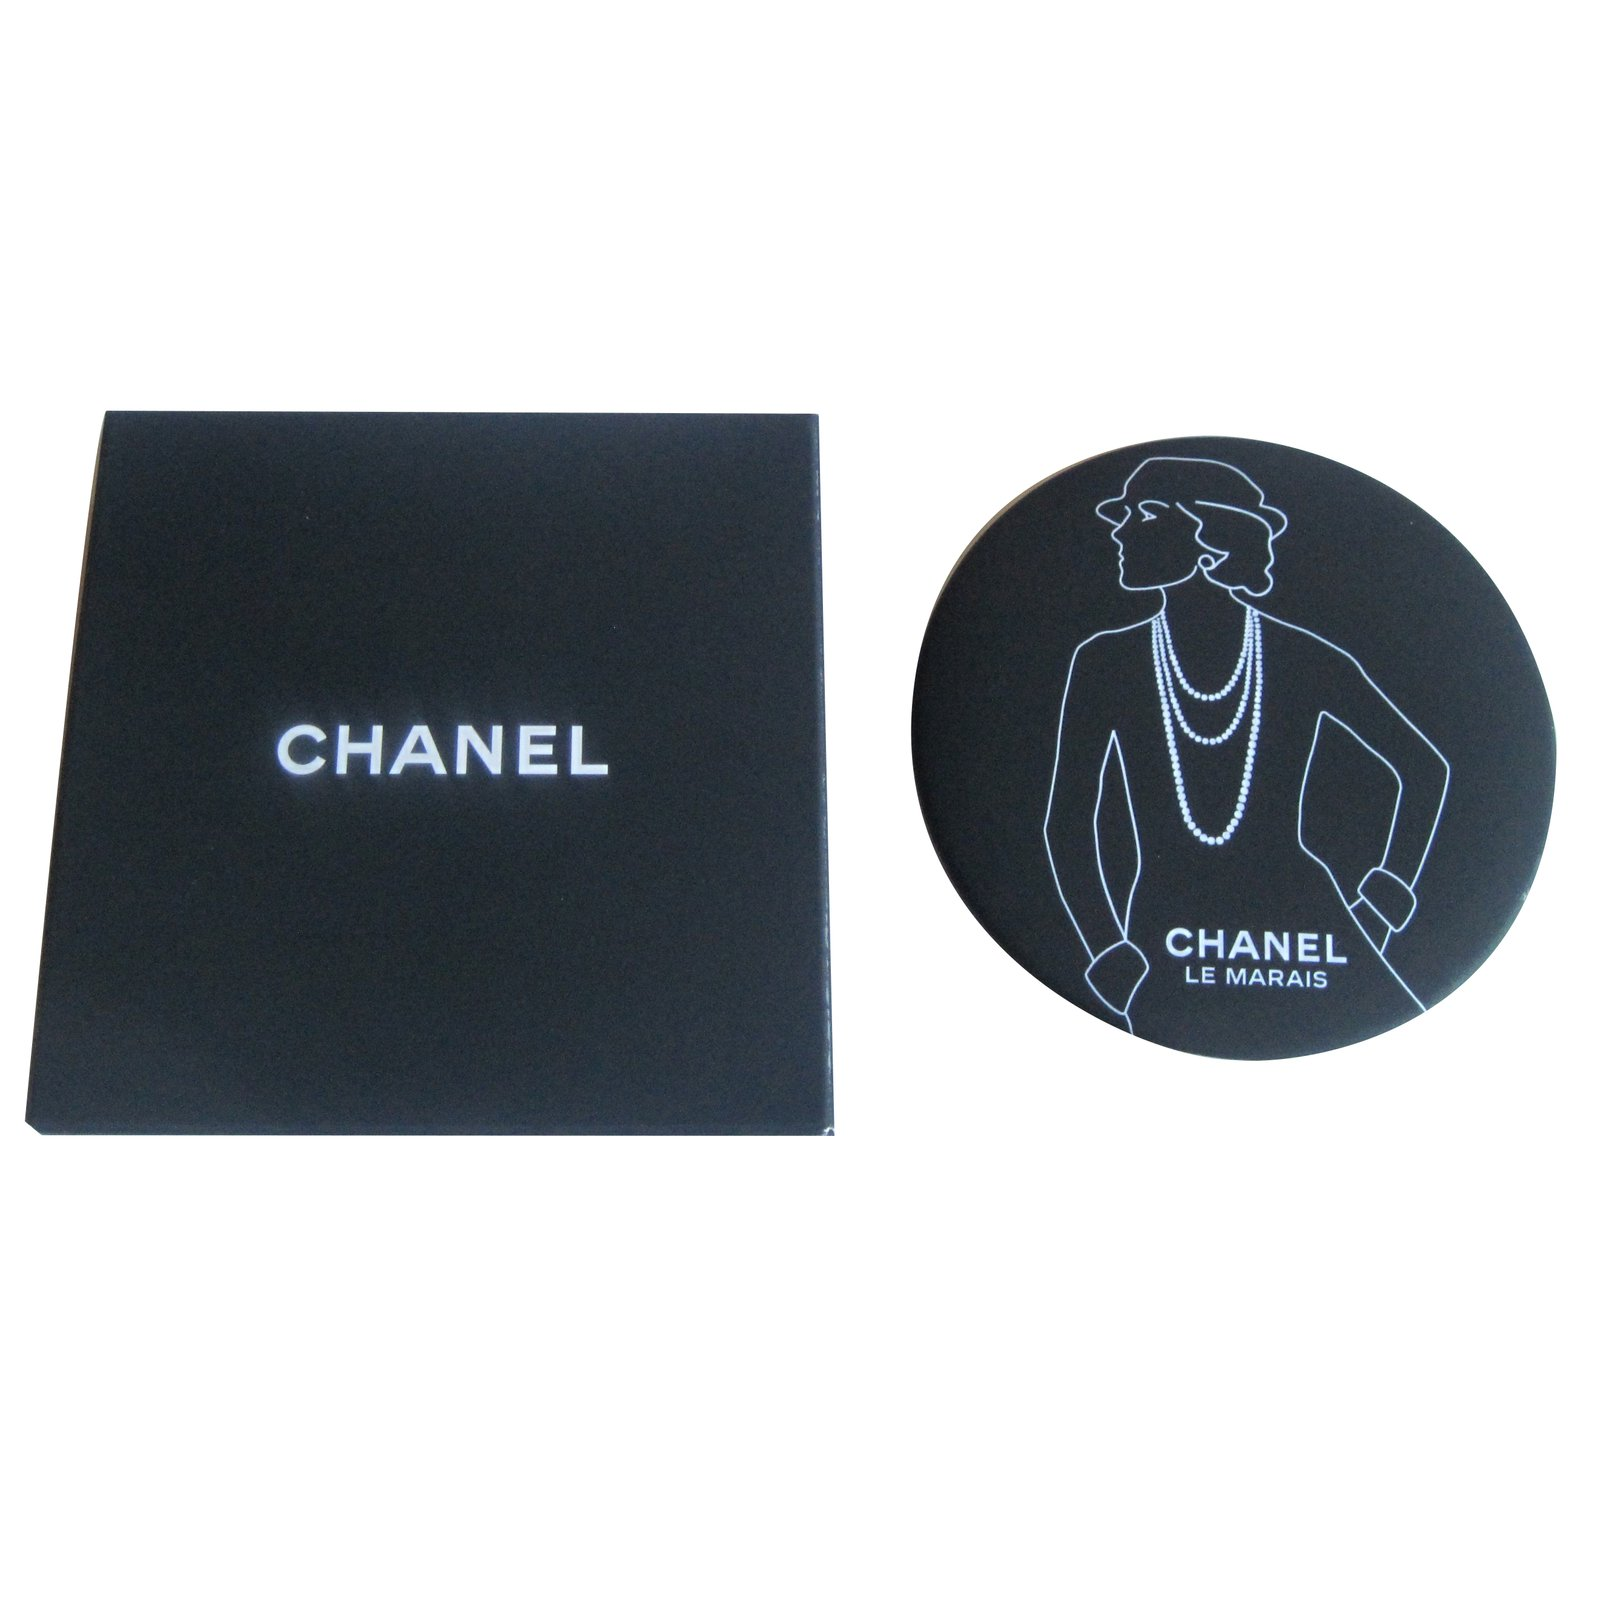 Miroir de sac chanel for Collection miroir chanel